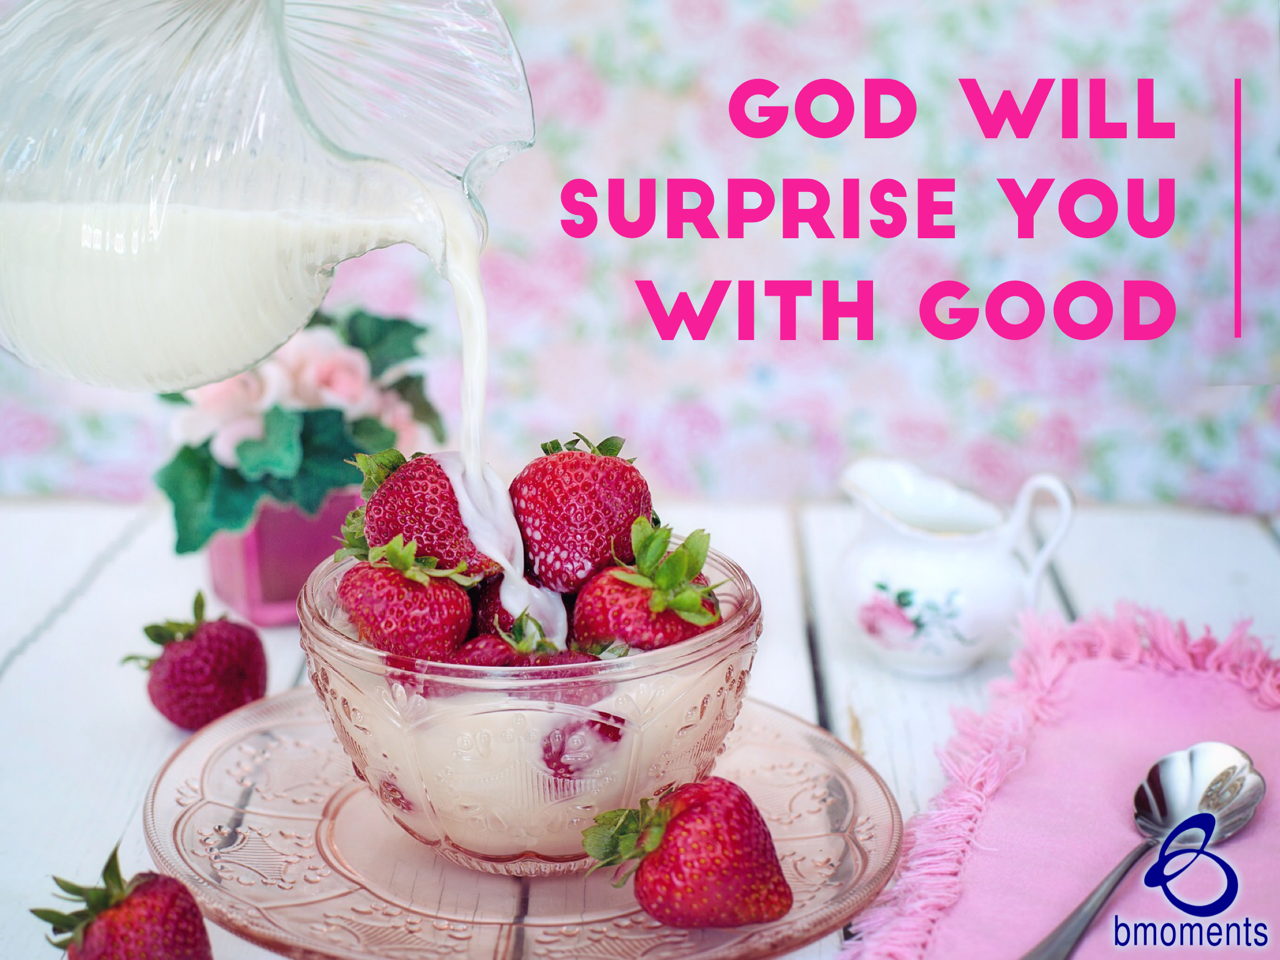 God Has Unexpected Good for You